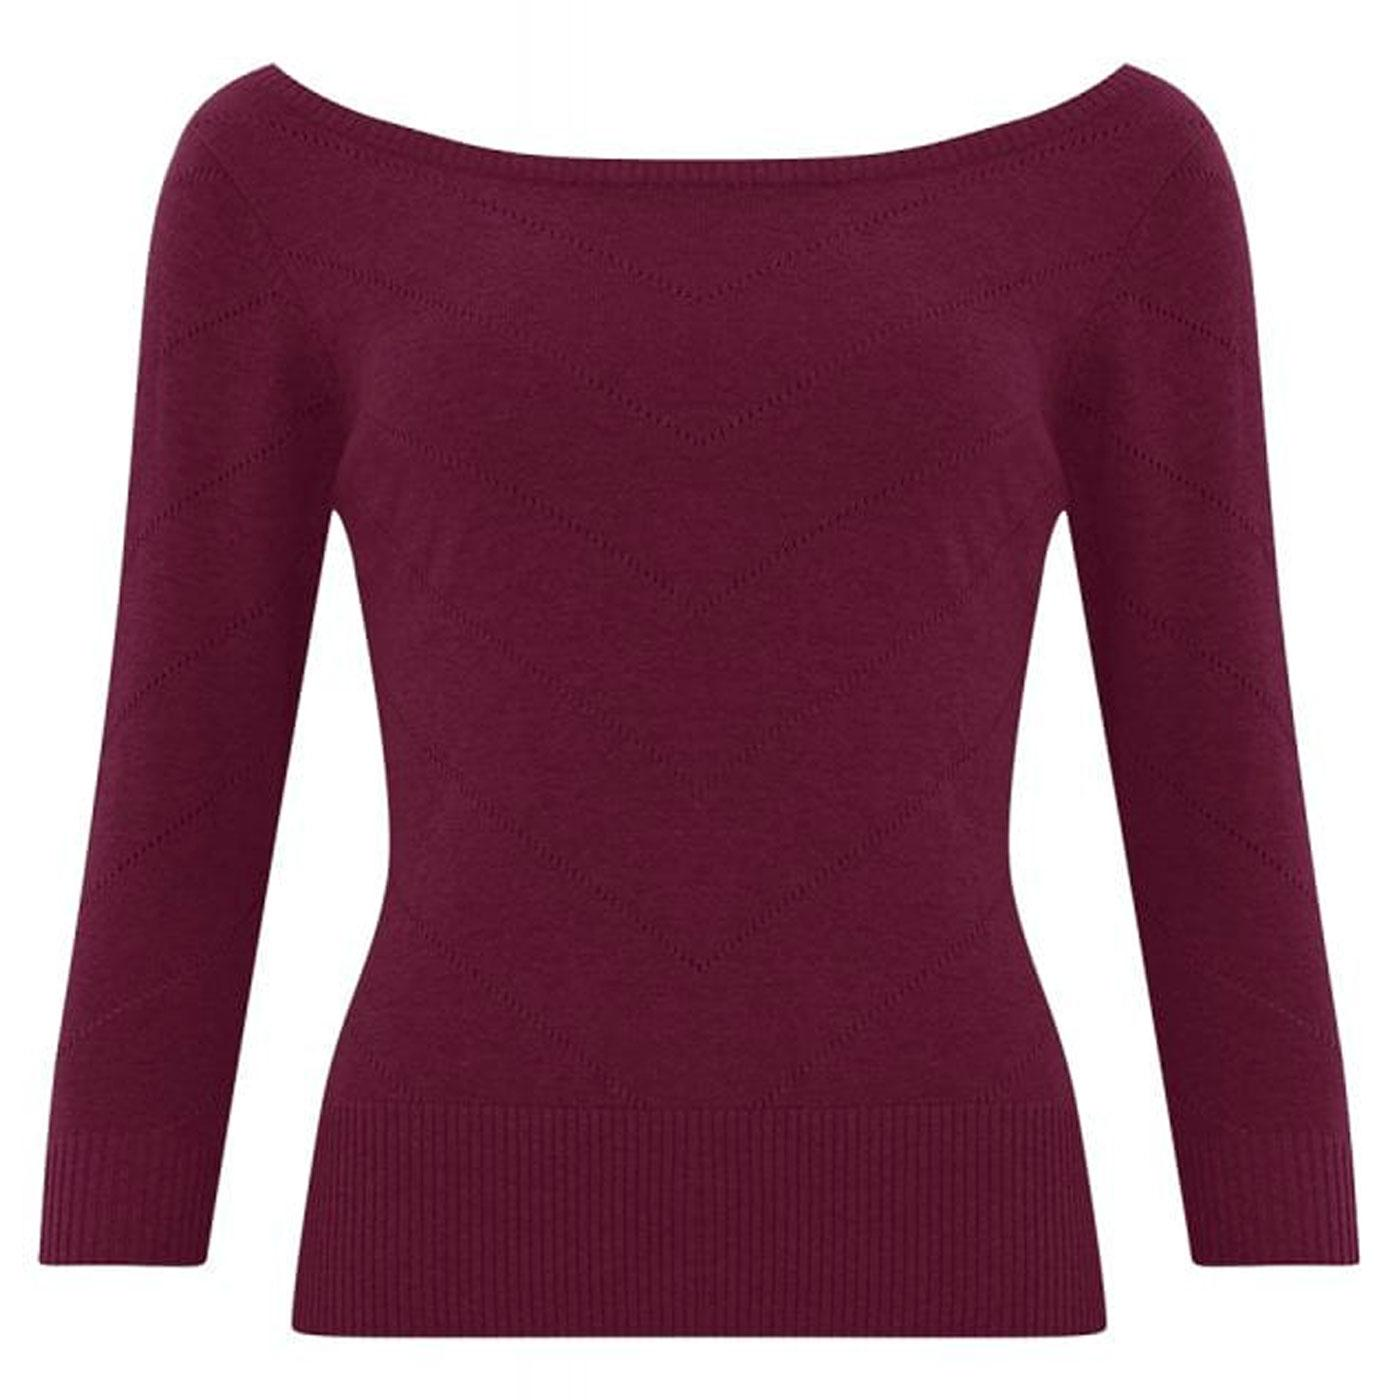 Bardot COLLECTIF Retro 50s Knitted Boatneck Top